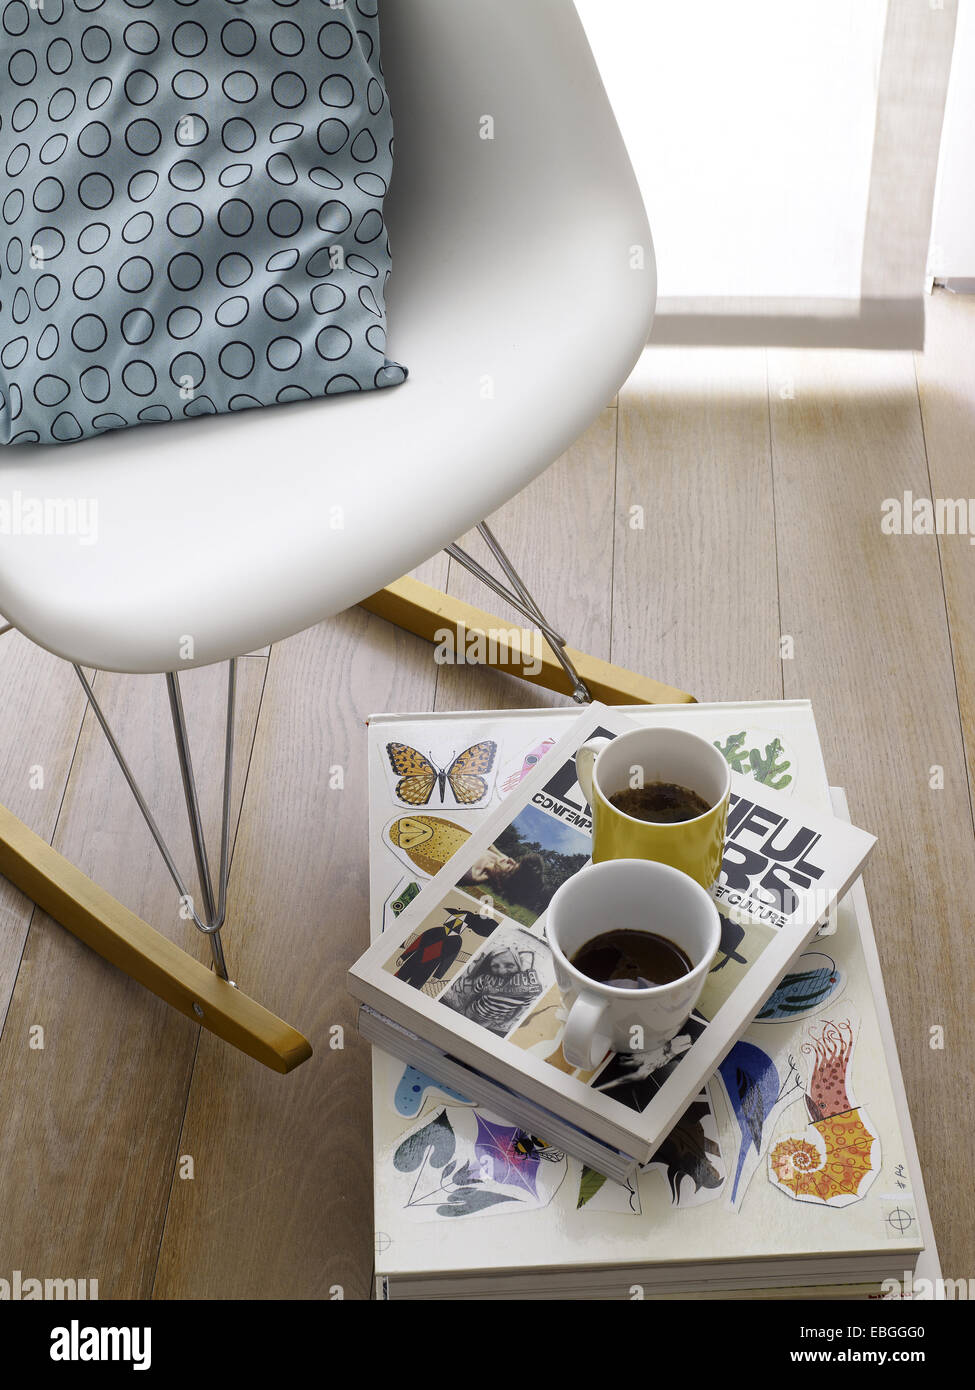 Interior Decoration: Two Cups Of Coffee On A Small Tray On The Floor With A